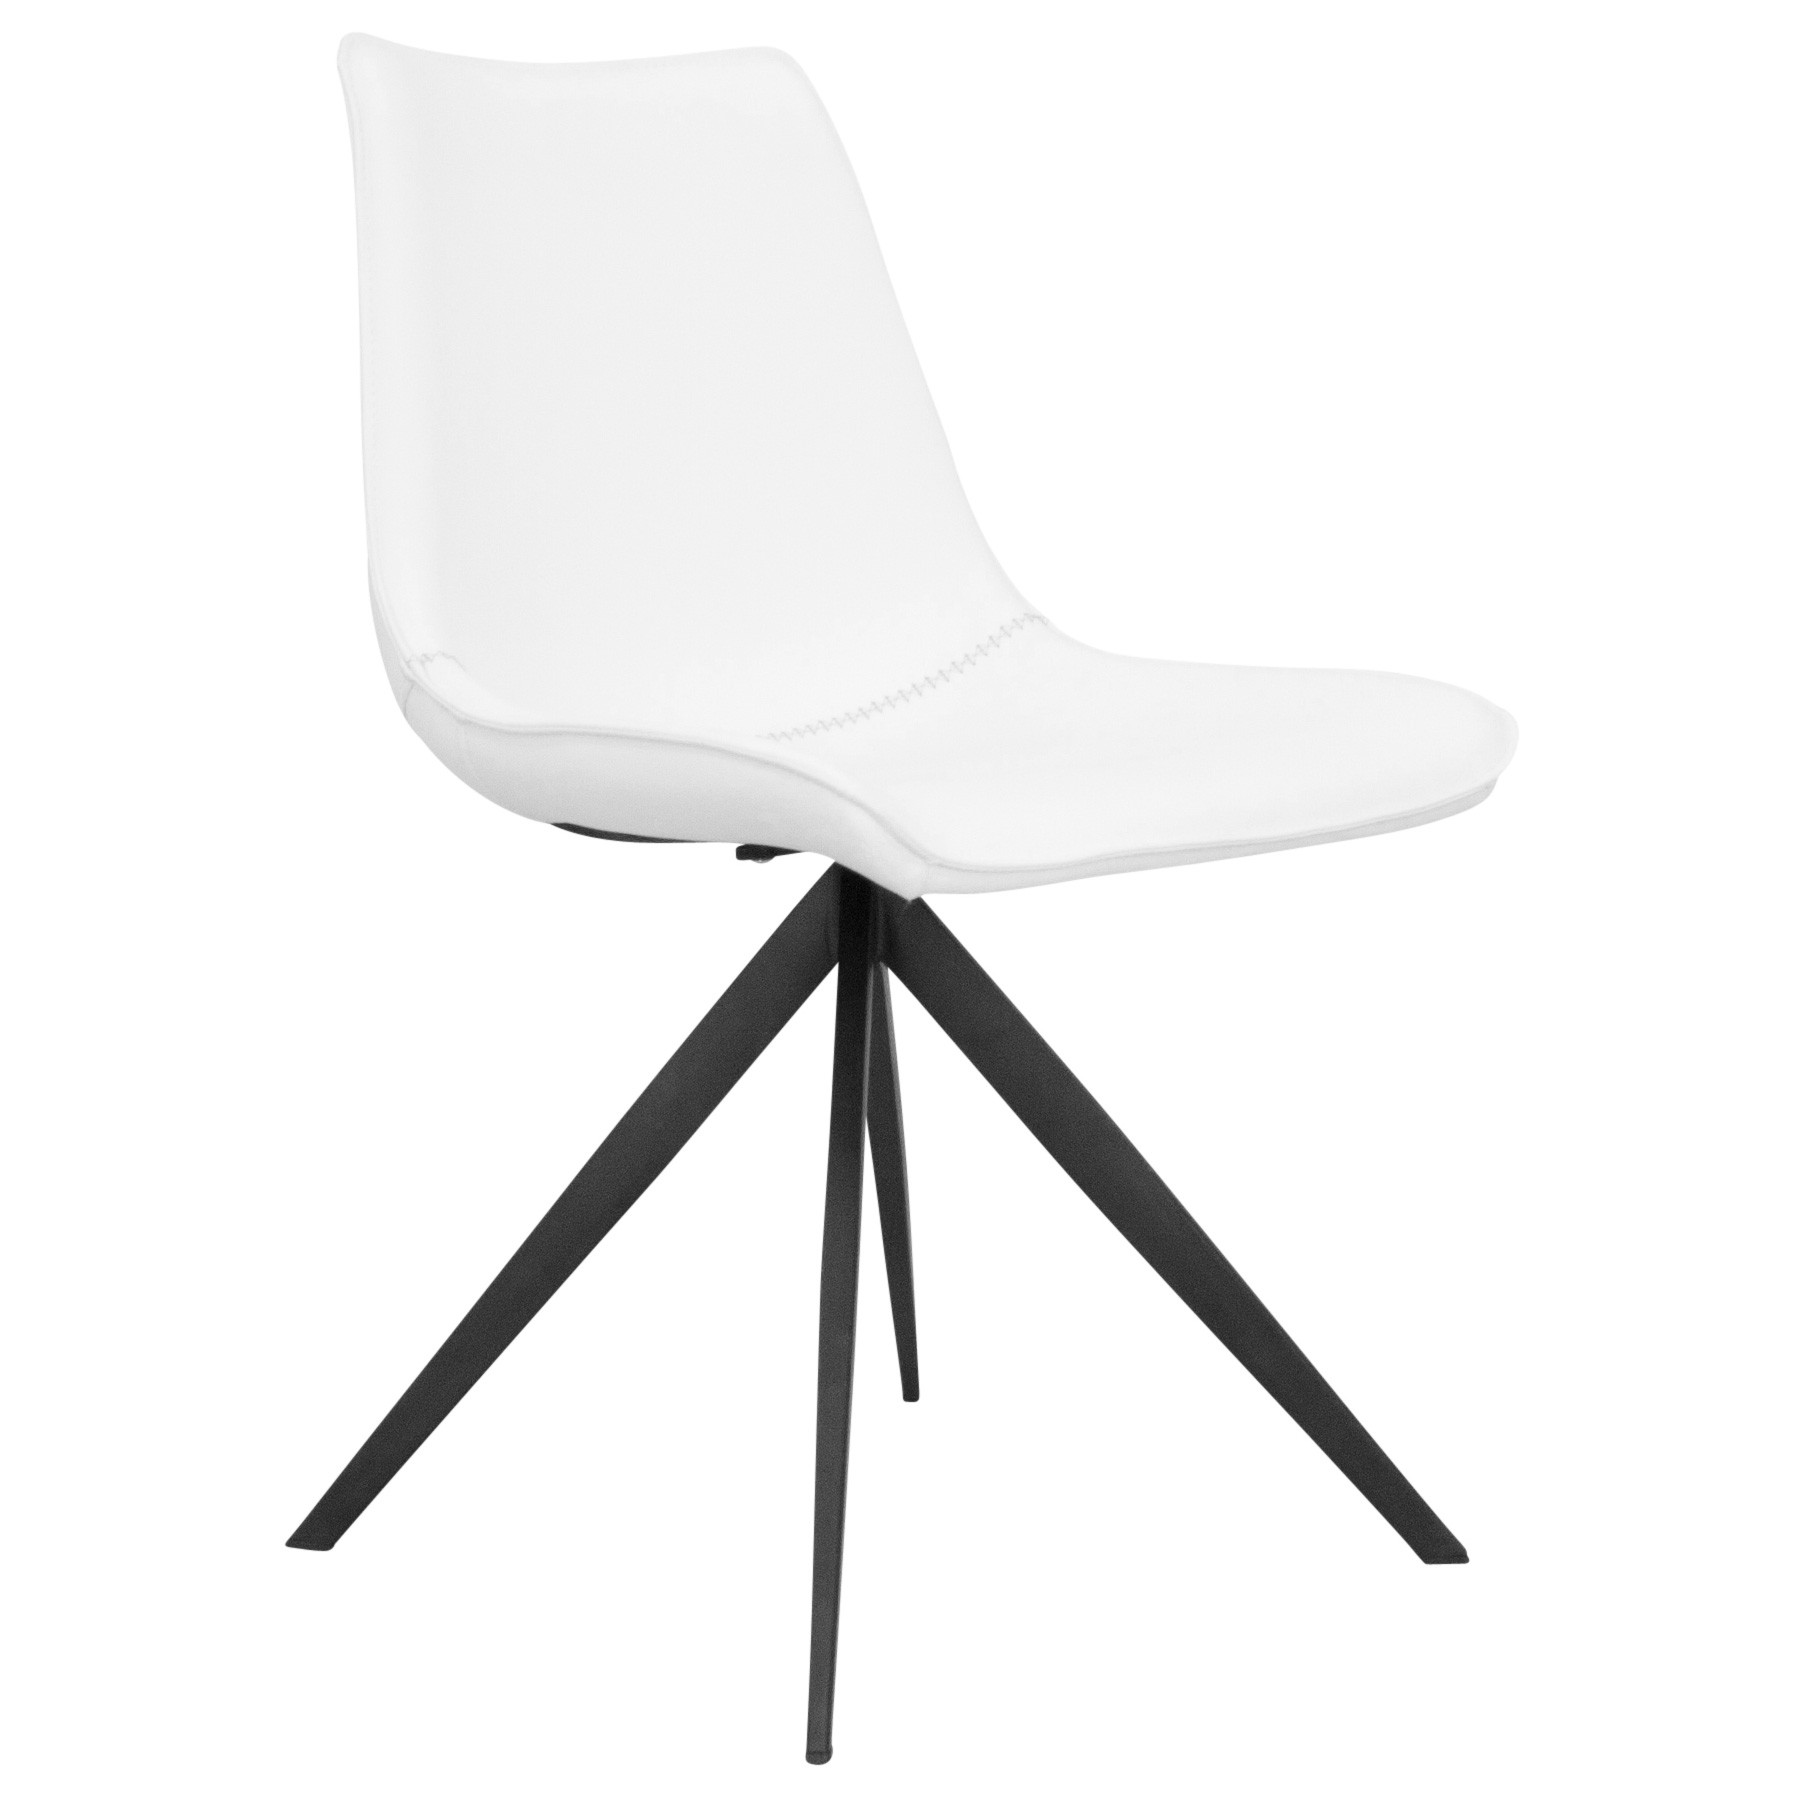 Astro PU Leather Dining Chair, White